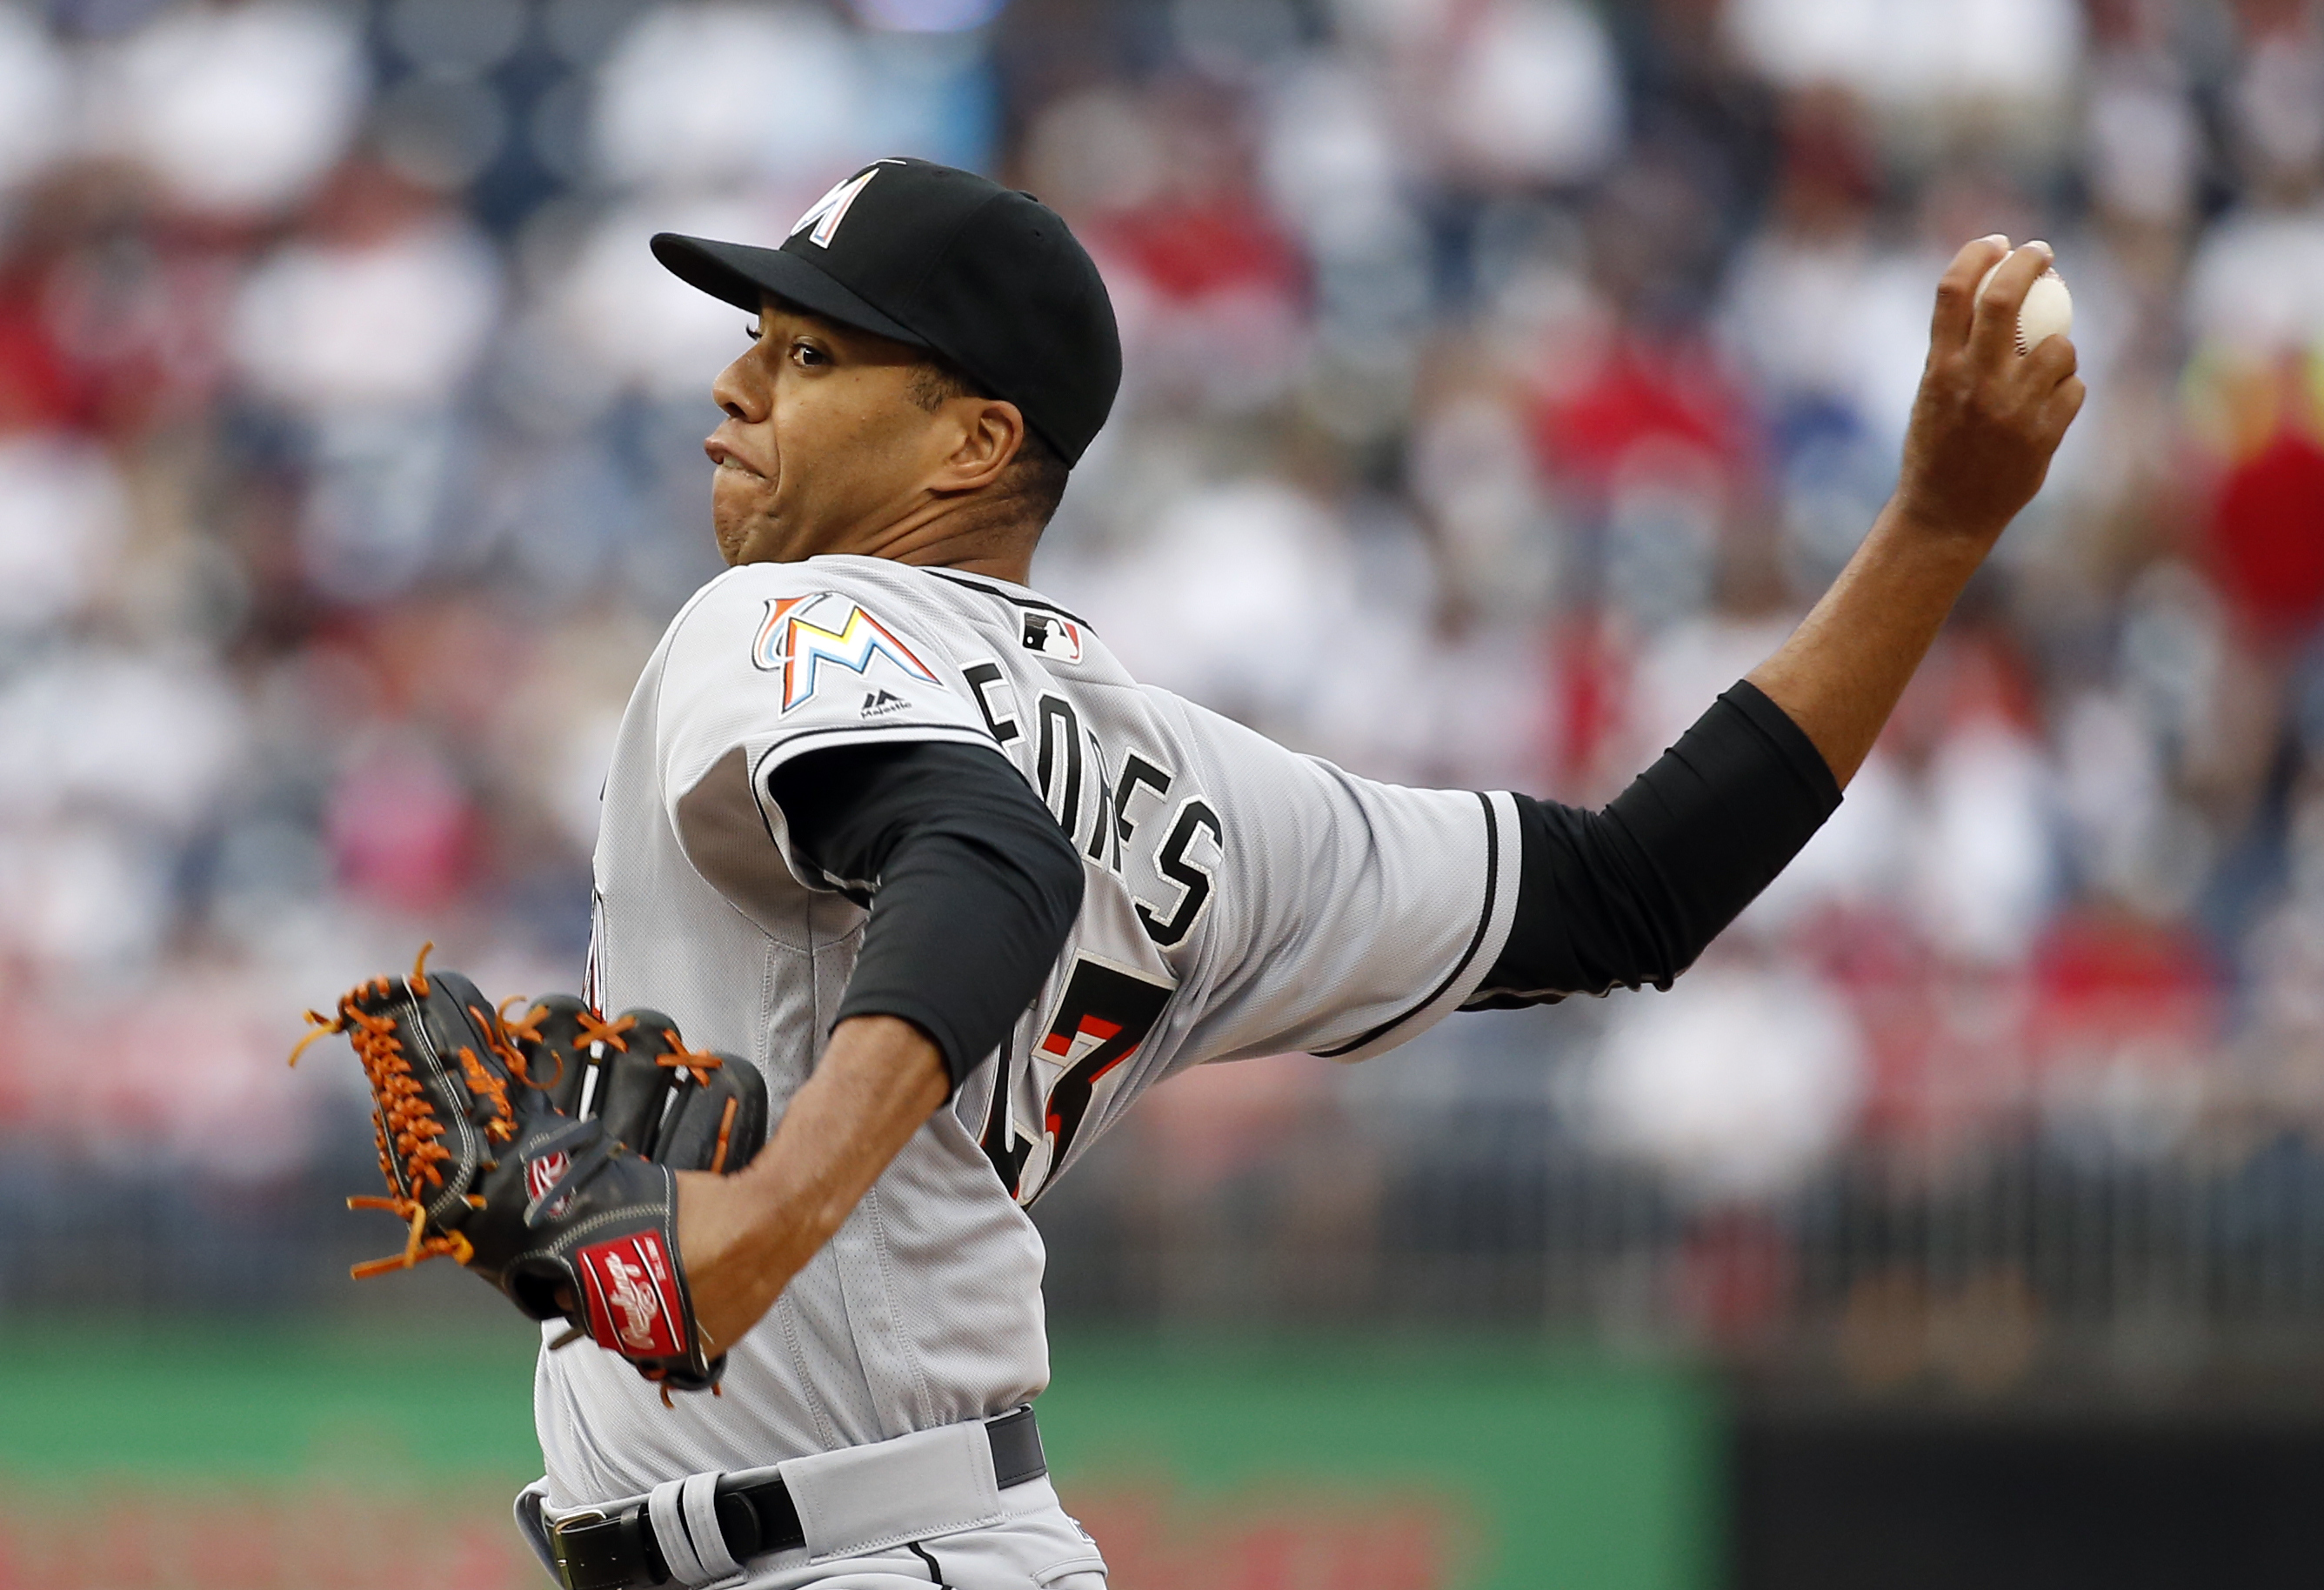 Miami Marlins starting pitcher Kendry Flores throws during the first inning of the second baseball game of a split doubleheader against the Washington Nationals at Nationals Park, Saturday, May 14, 2016, in Washington. (AP Photo/Alex Brandon)